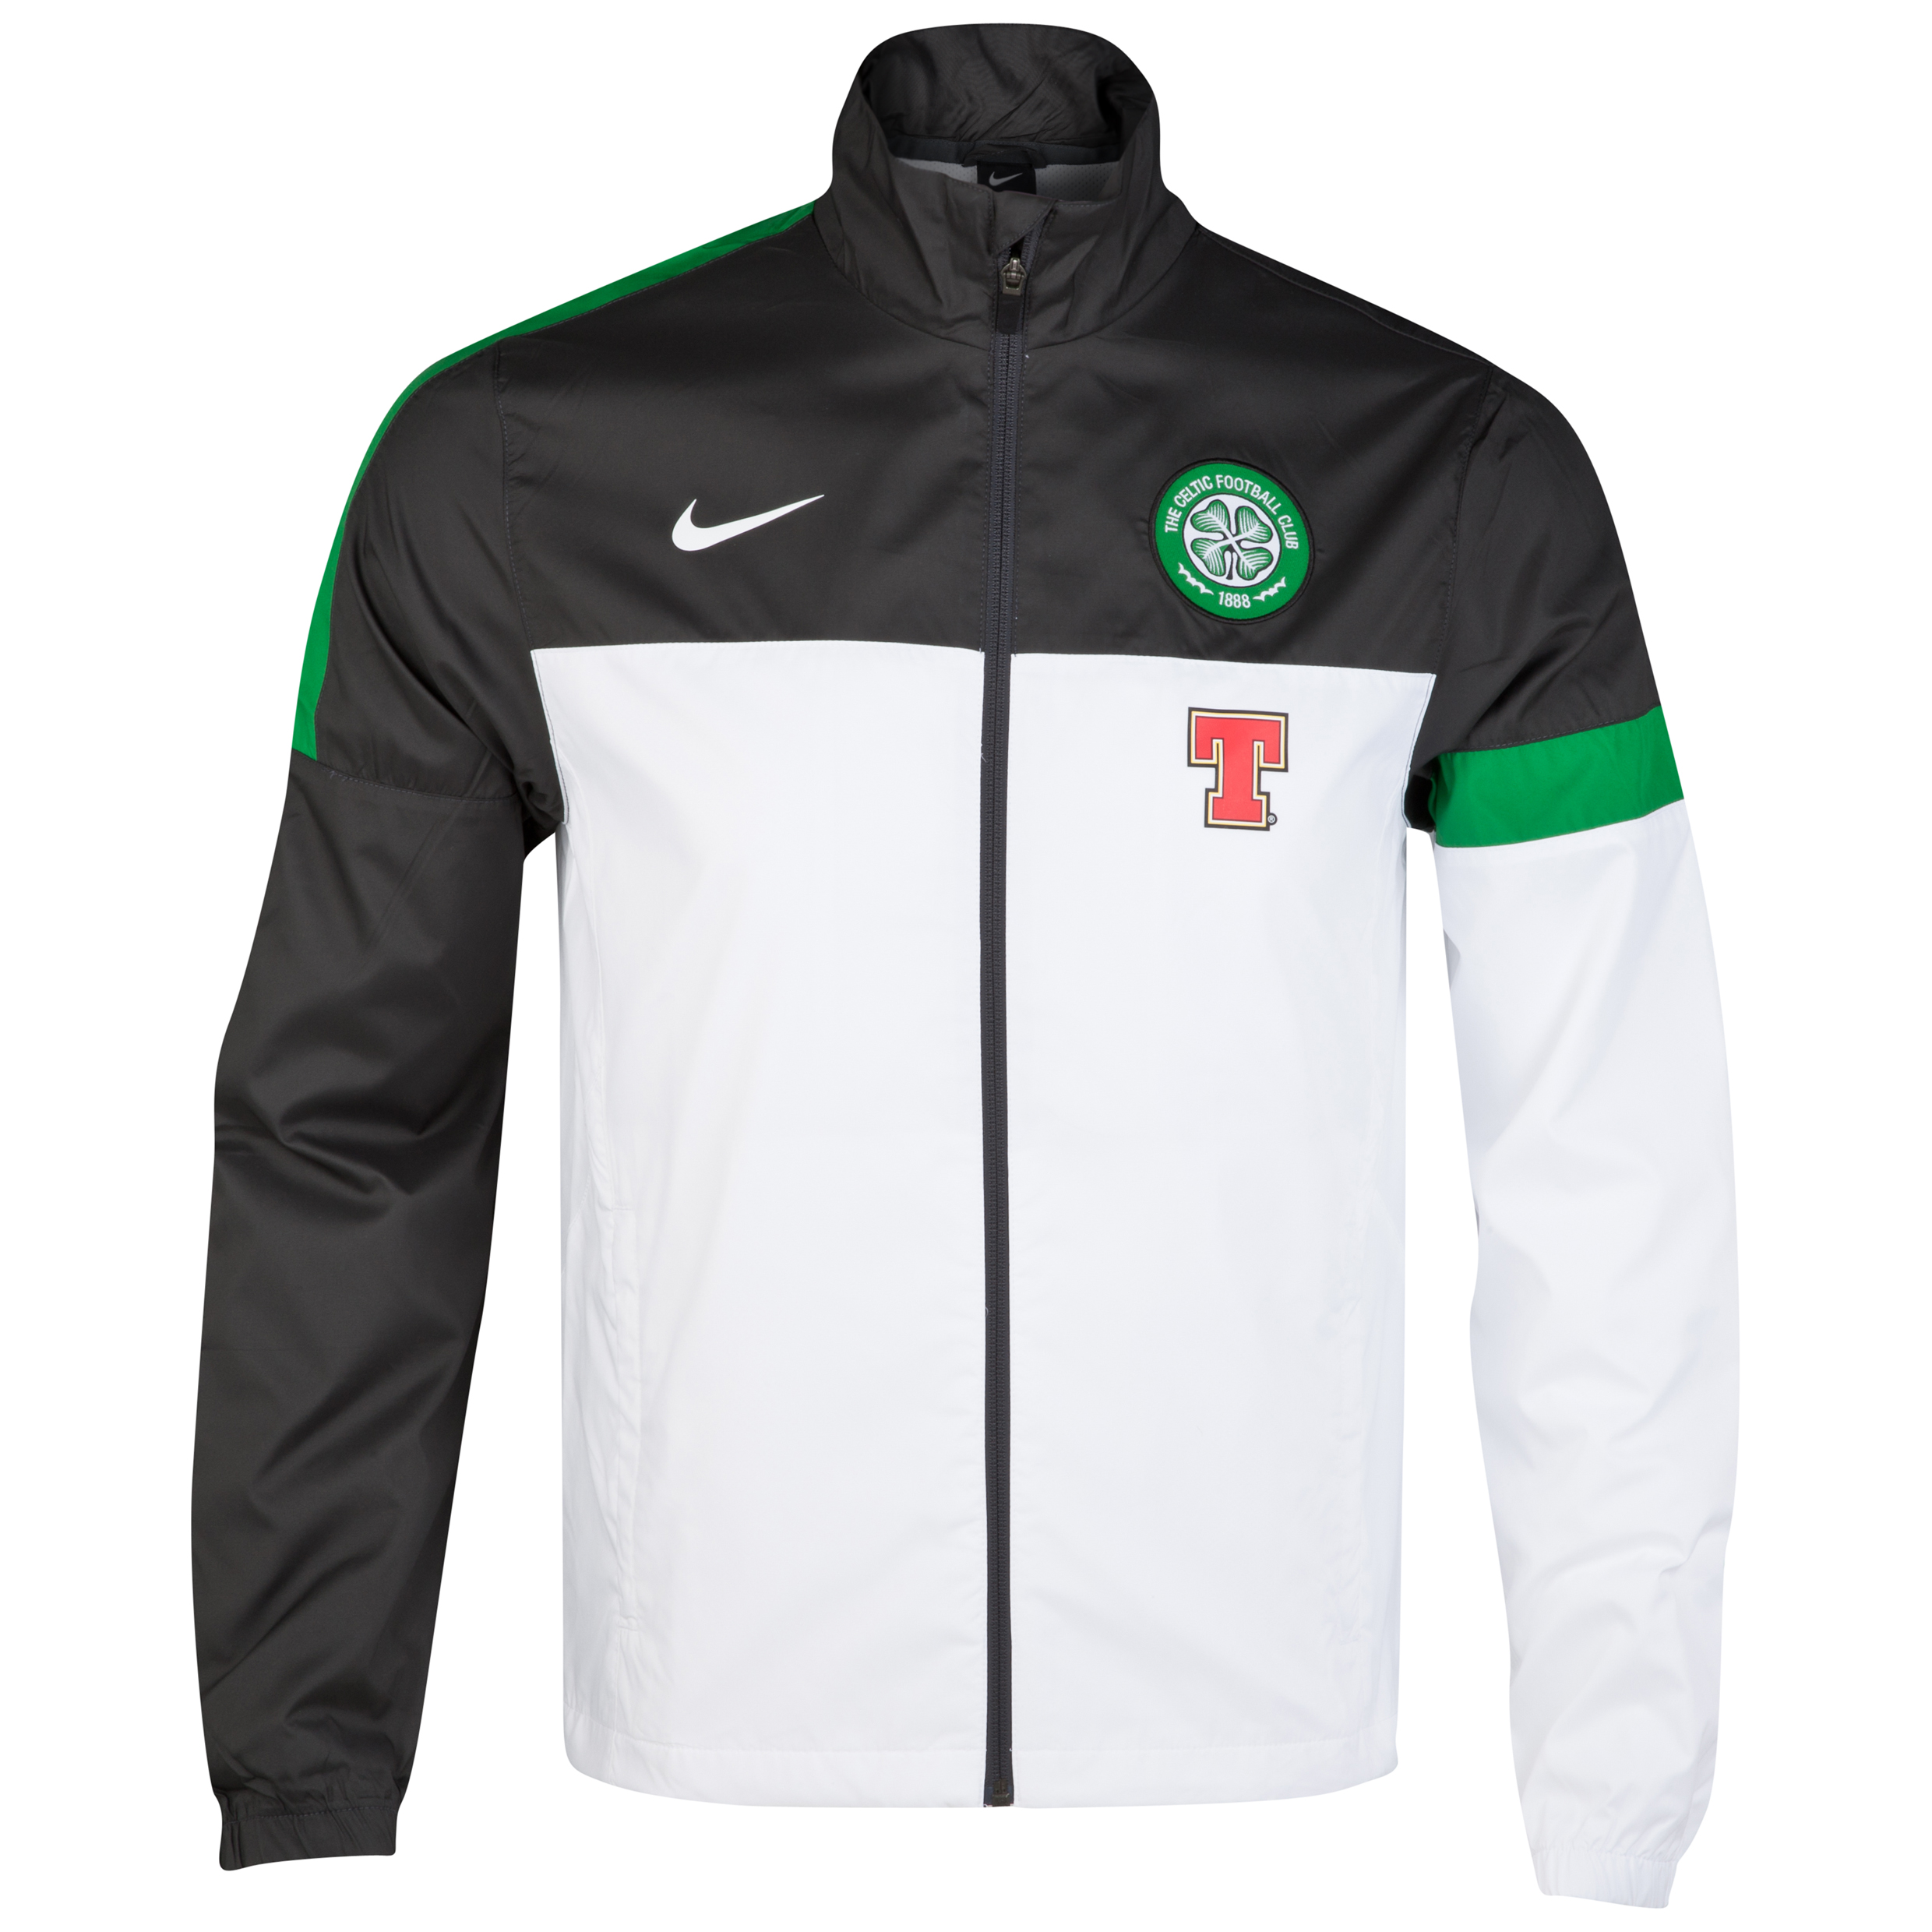 Celtic Woven Sideline Jacket - White/Anthracite/Victory Green/White